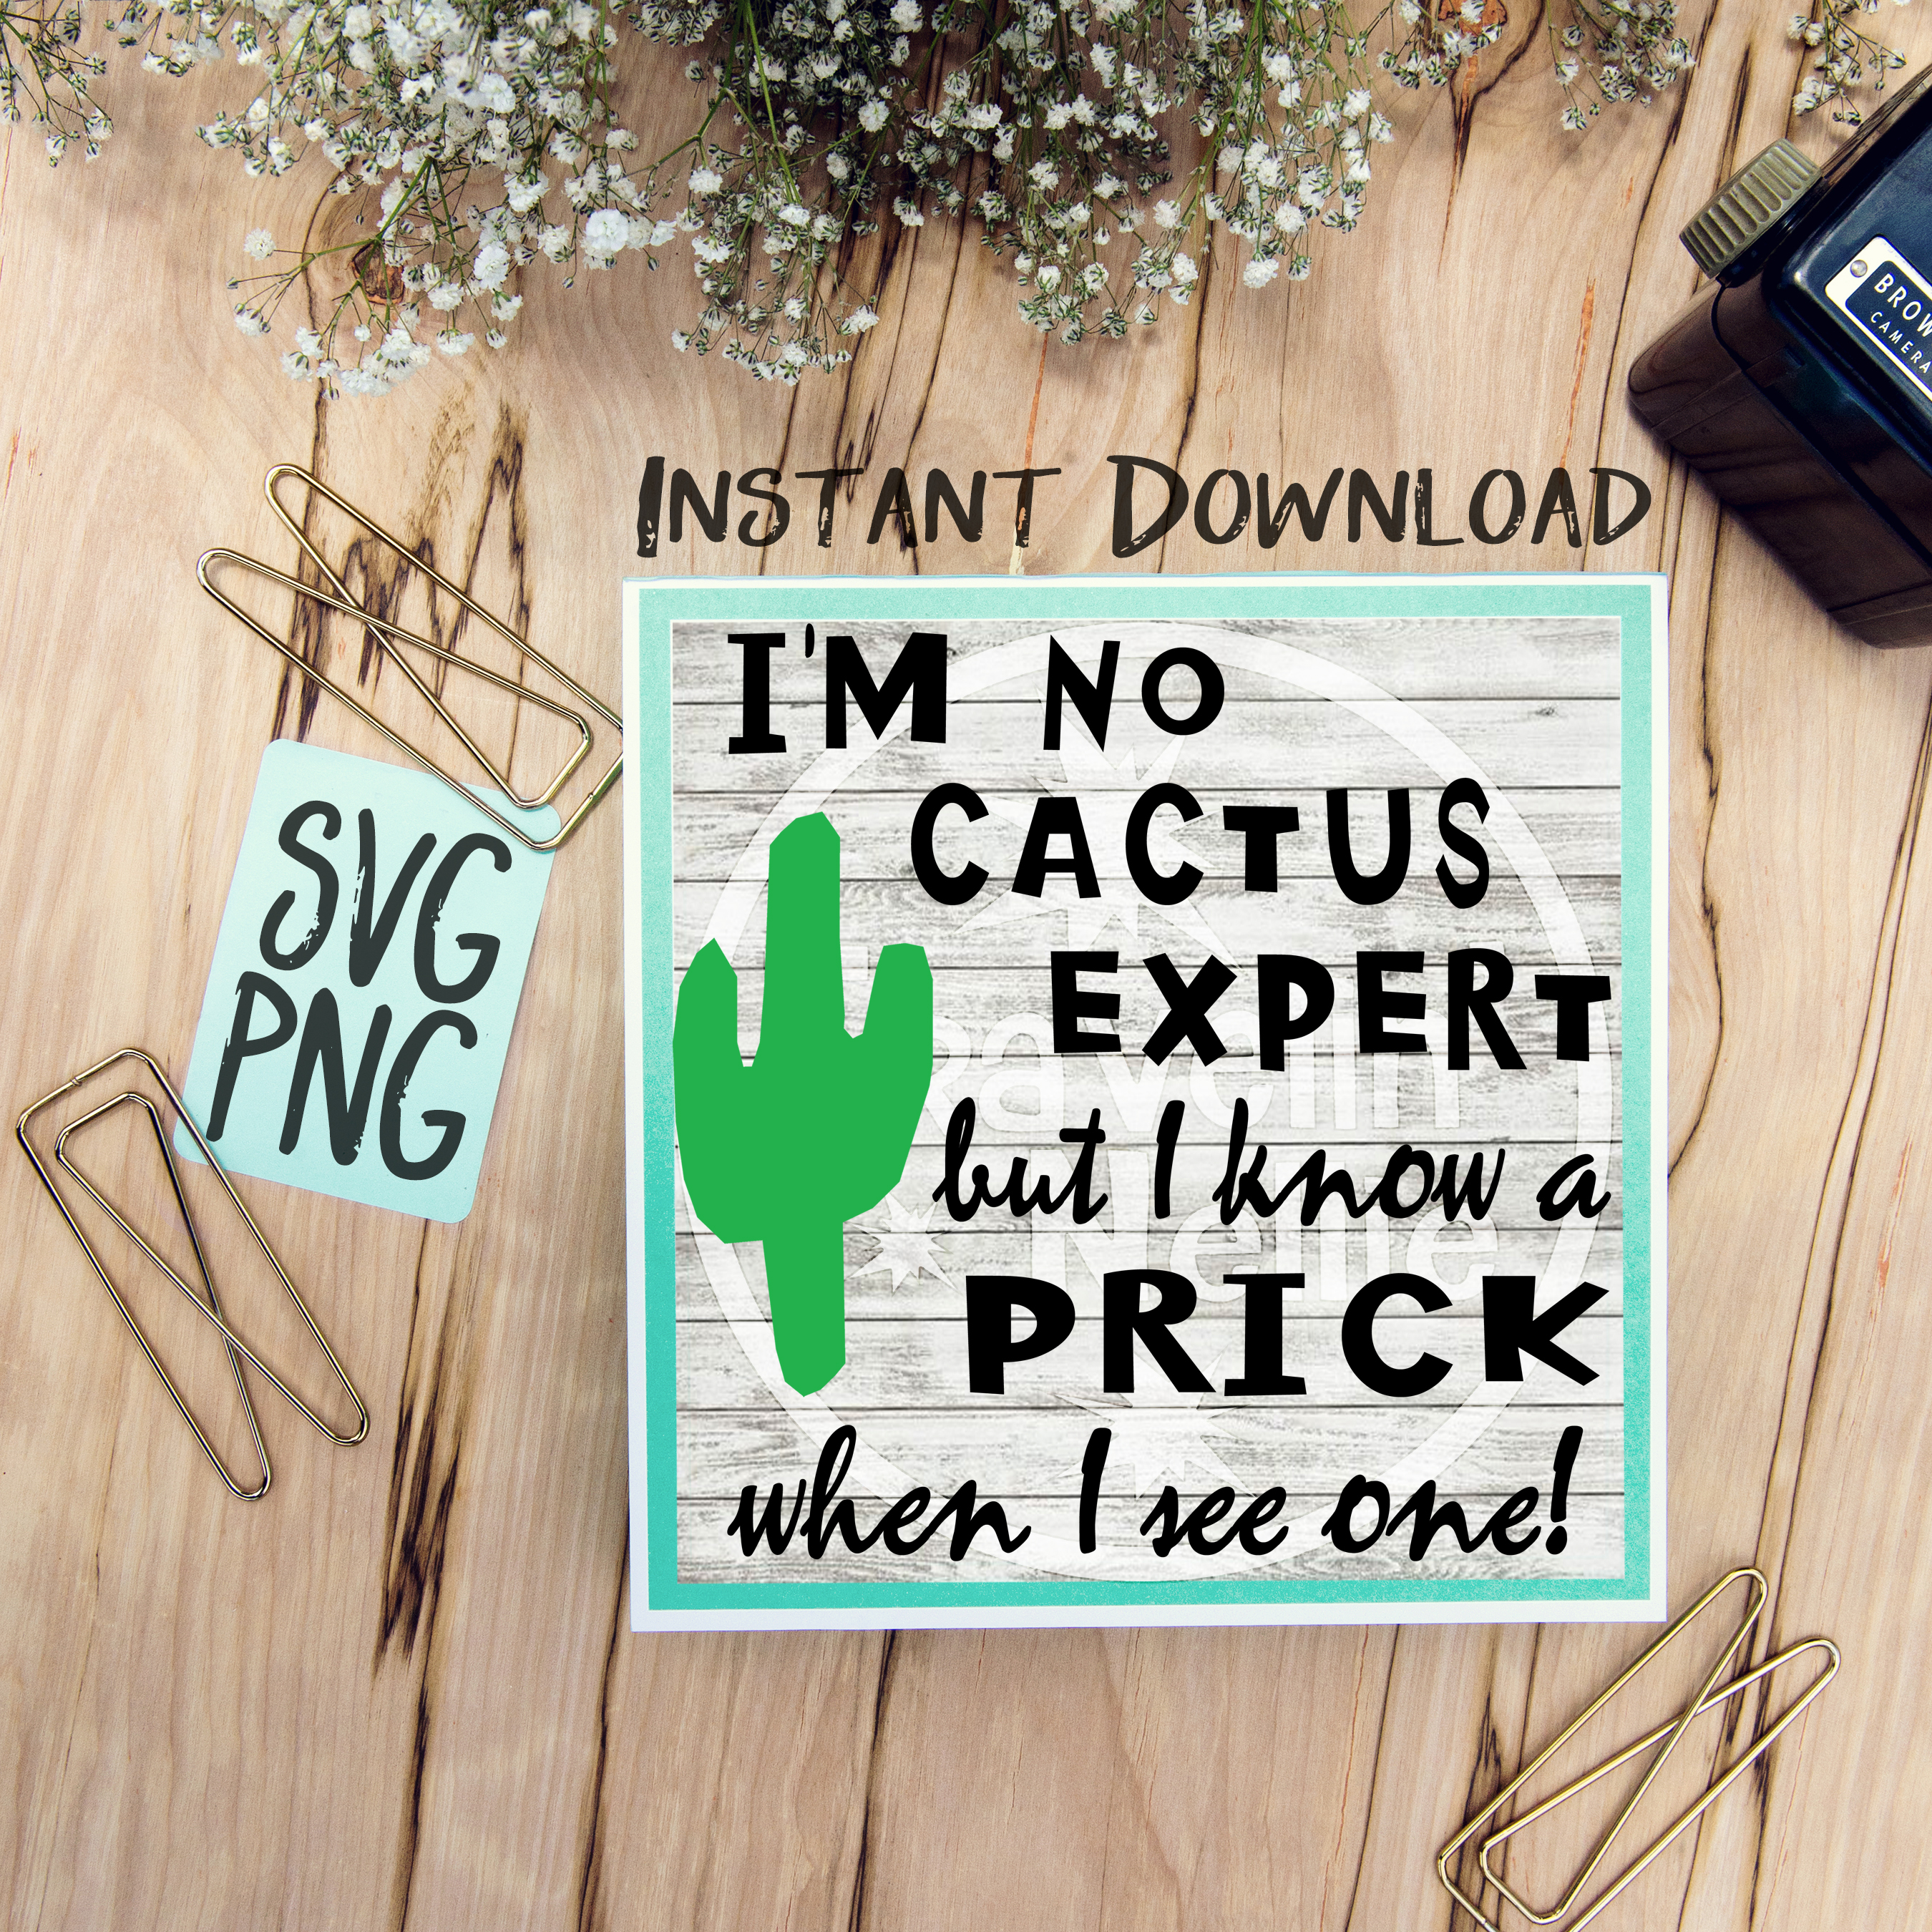 I know a Prick When I see One SVG PNG Image Design for Vinyl Cutters Print DIY Shirt Design Cruise Vacation Anchor Brother Cricut Cameo Cutout example image 1